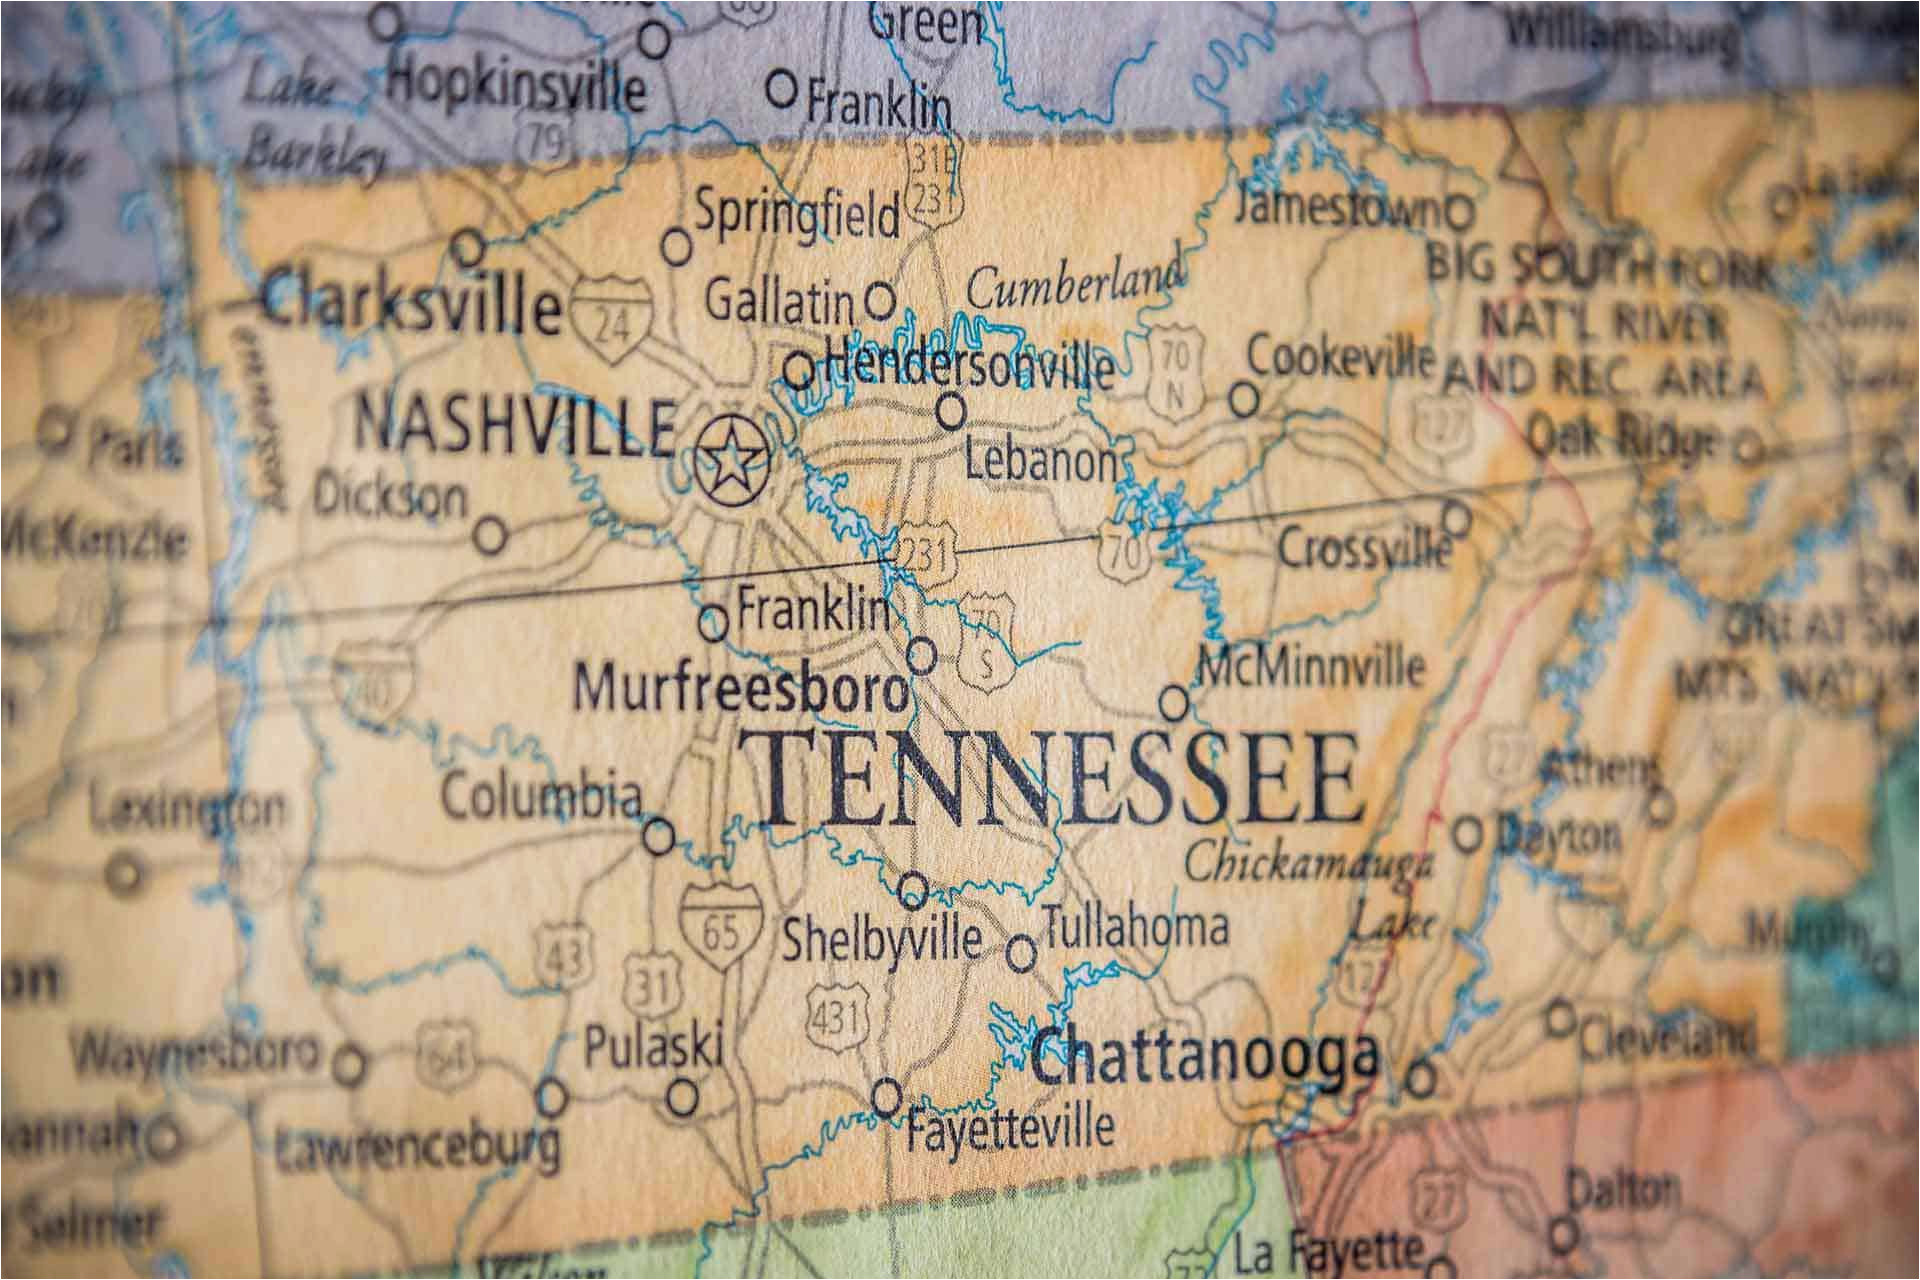 Nashville Tennessee Time Zone Map Old Historical City County ...